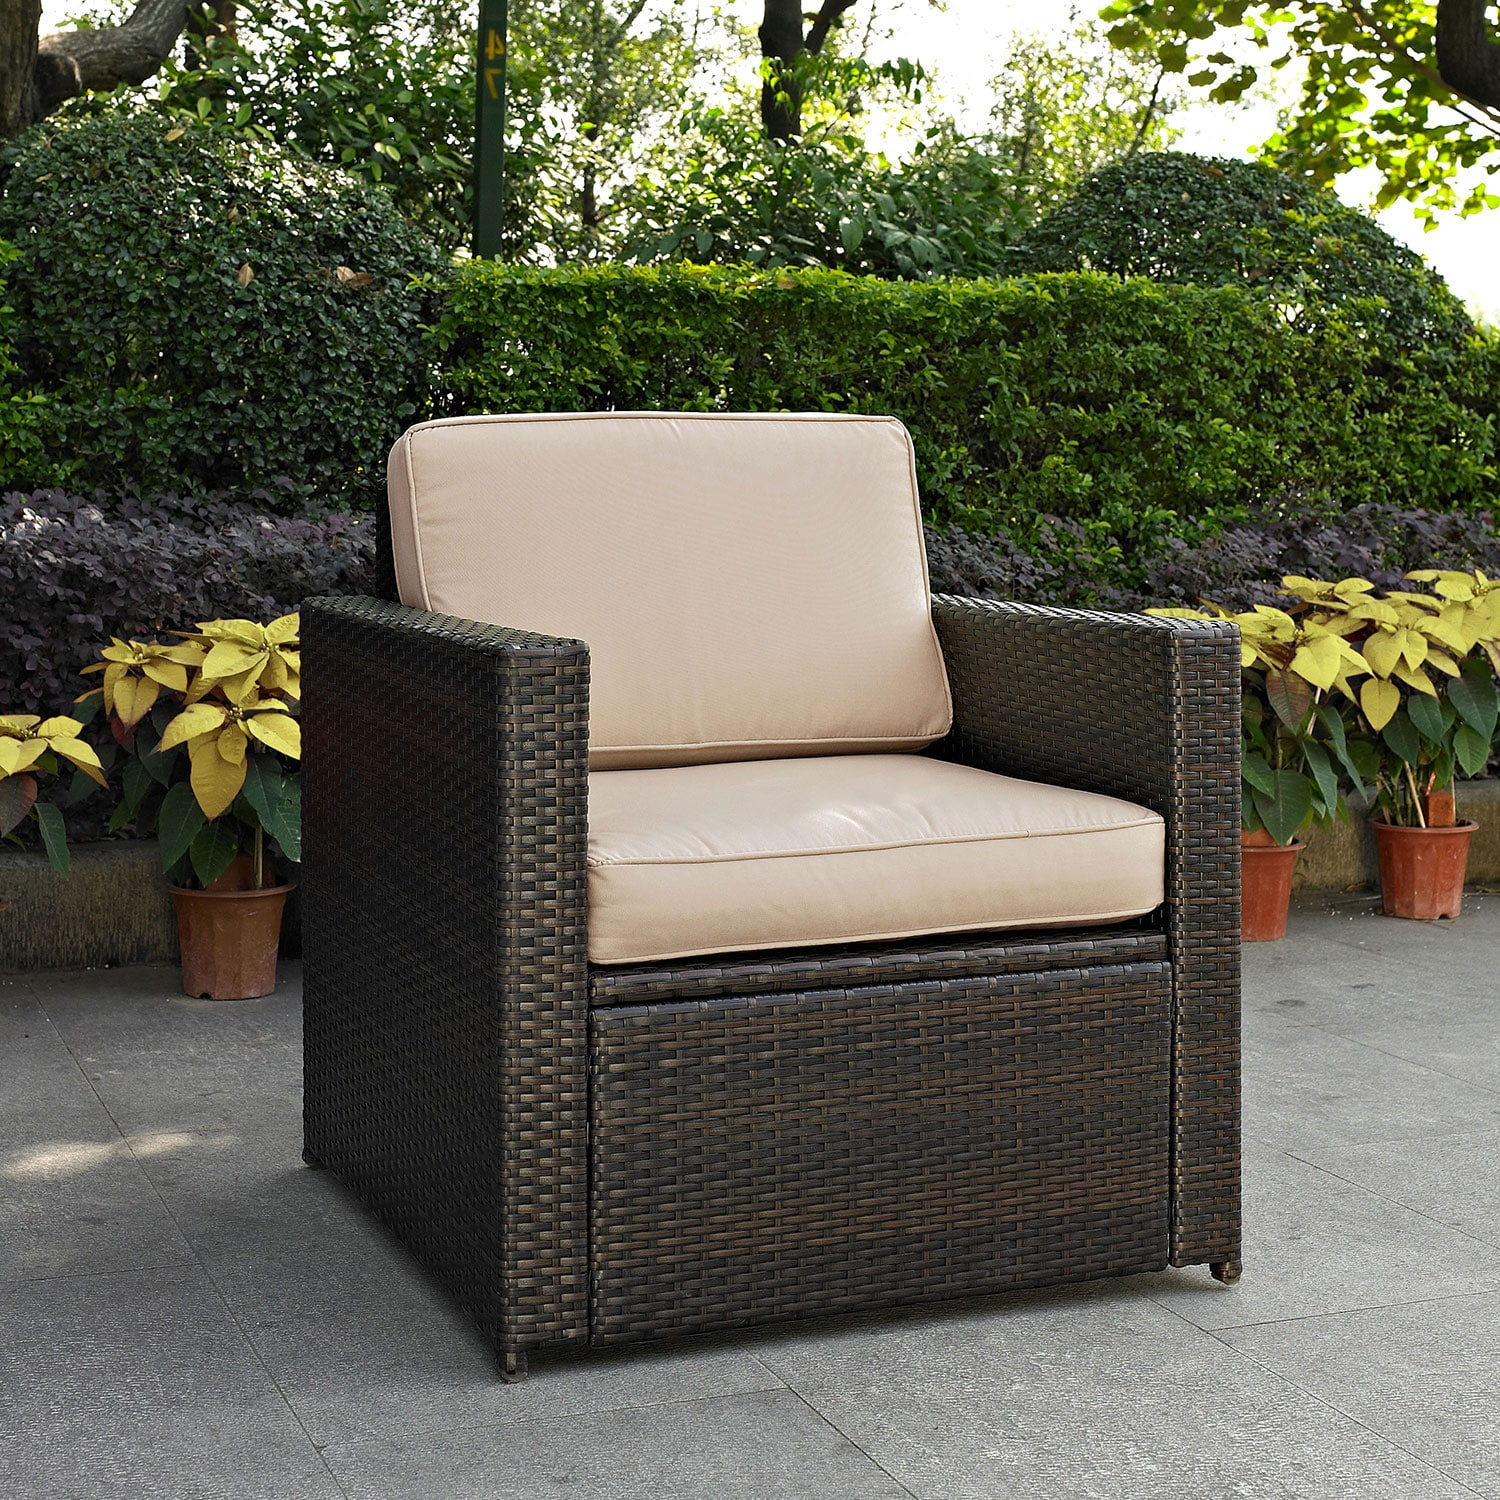 Outdoor Furniture - Aldo Outdoor Chair